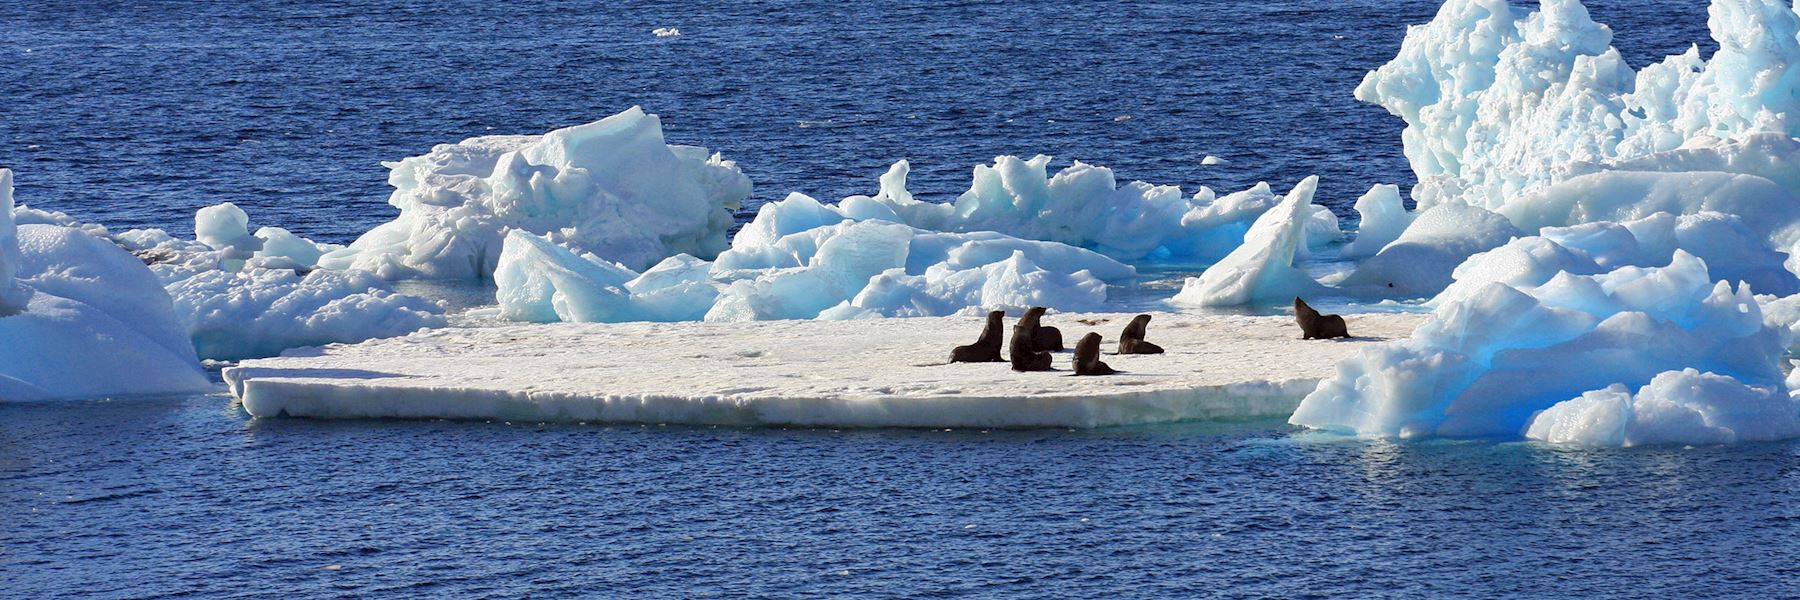 Antarctica itinerary ideas audley travel for Best places to visit in antarctica